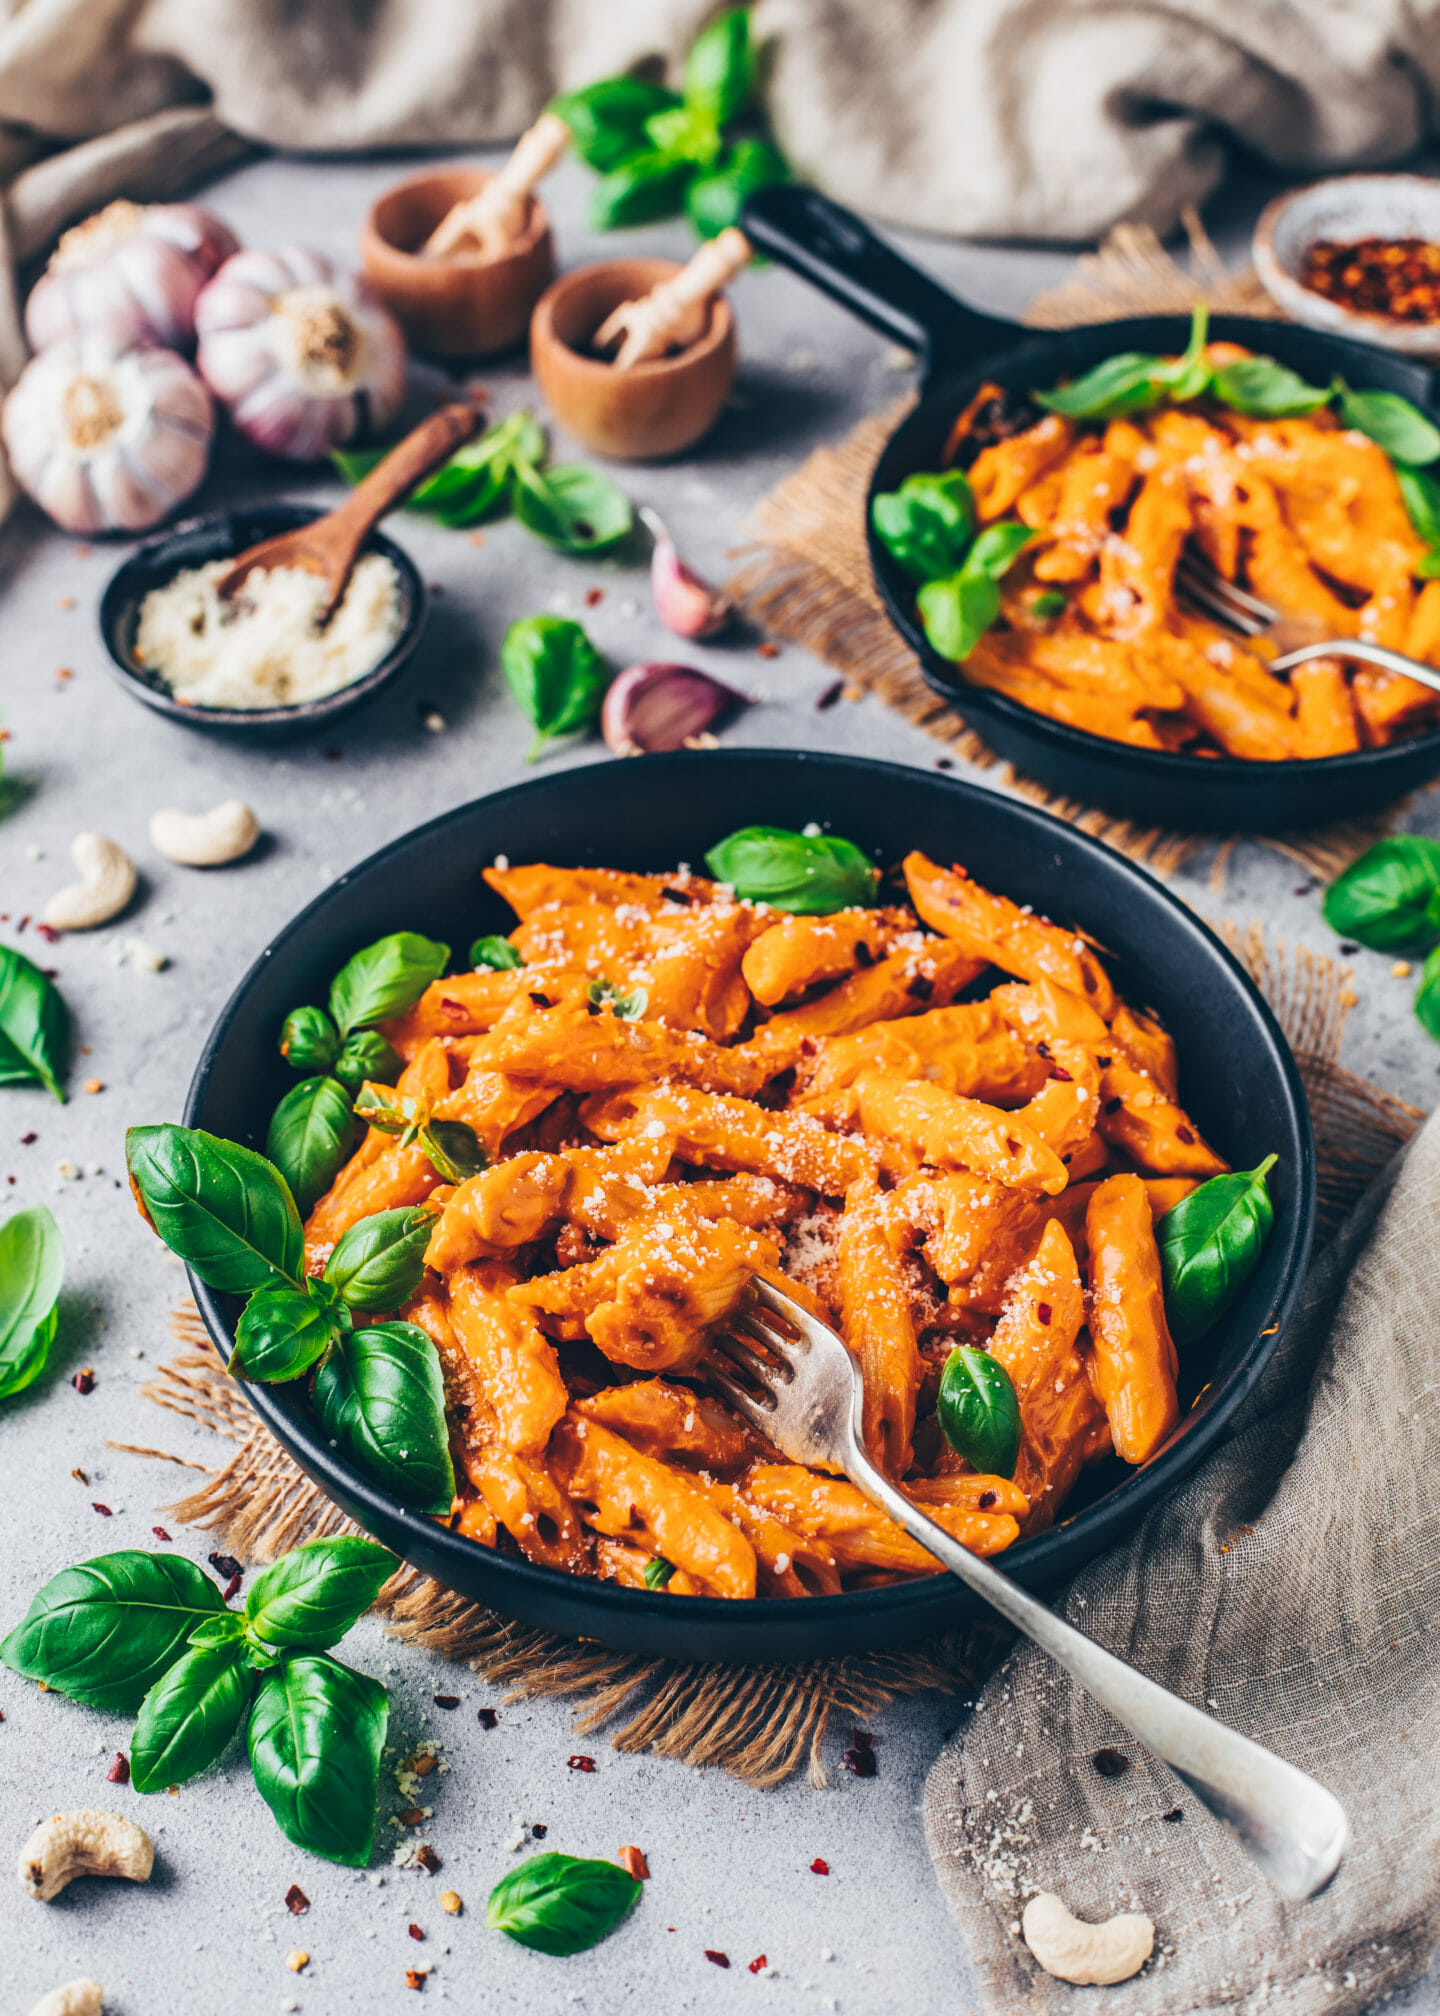 Sun-dried Tomato Cashew Penne Pasta alla Vodka with vegan parmesan cheese and basil